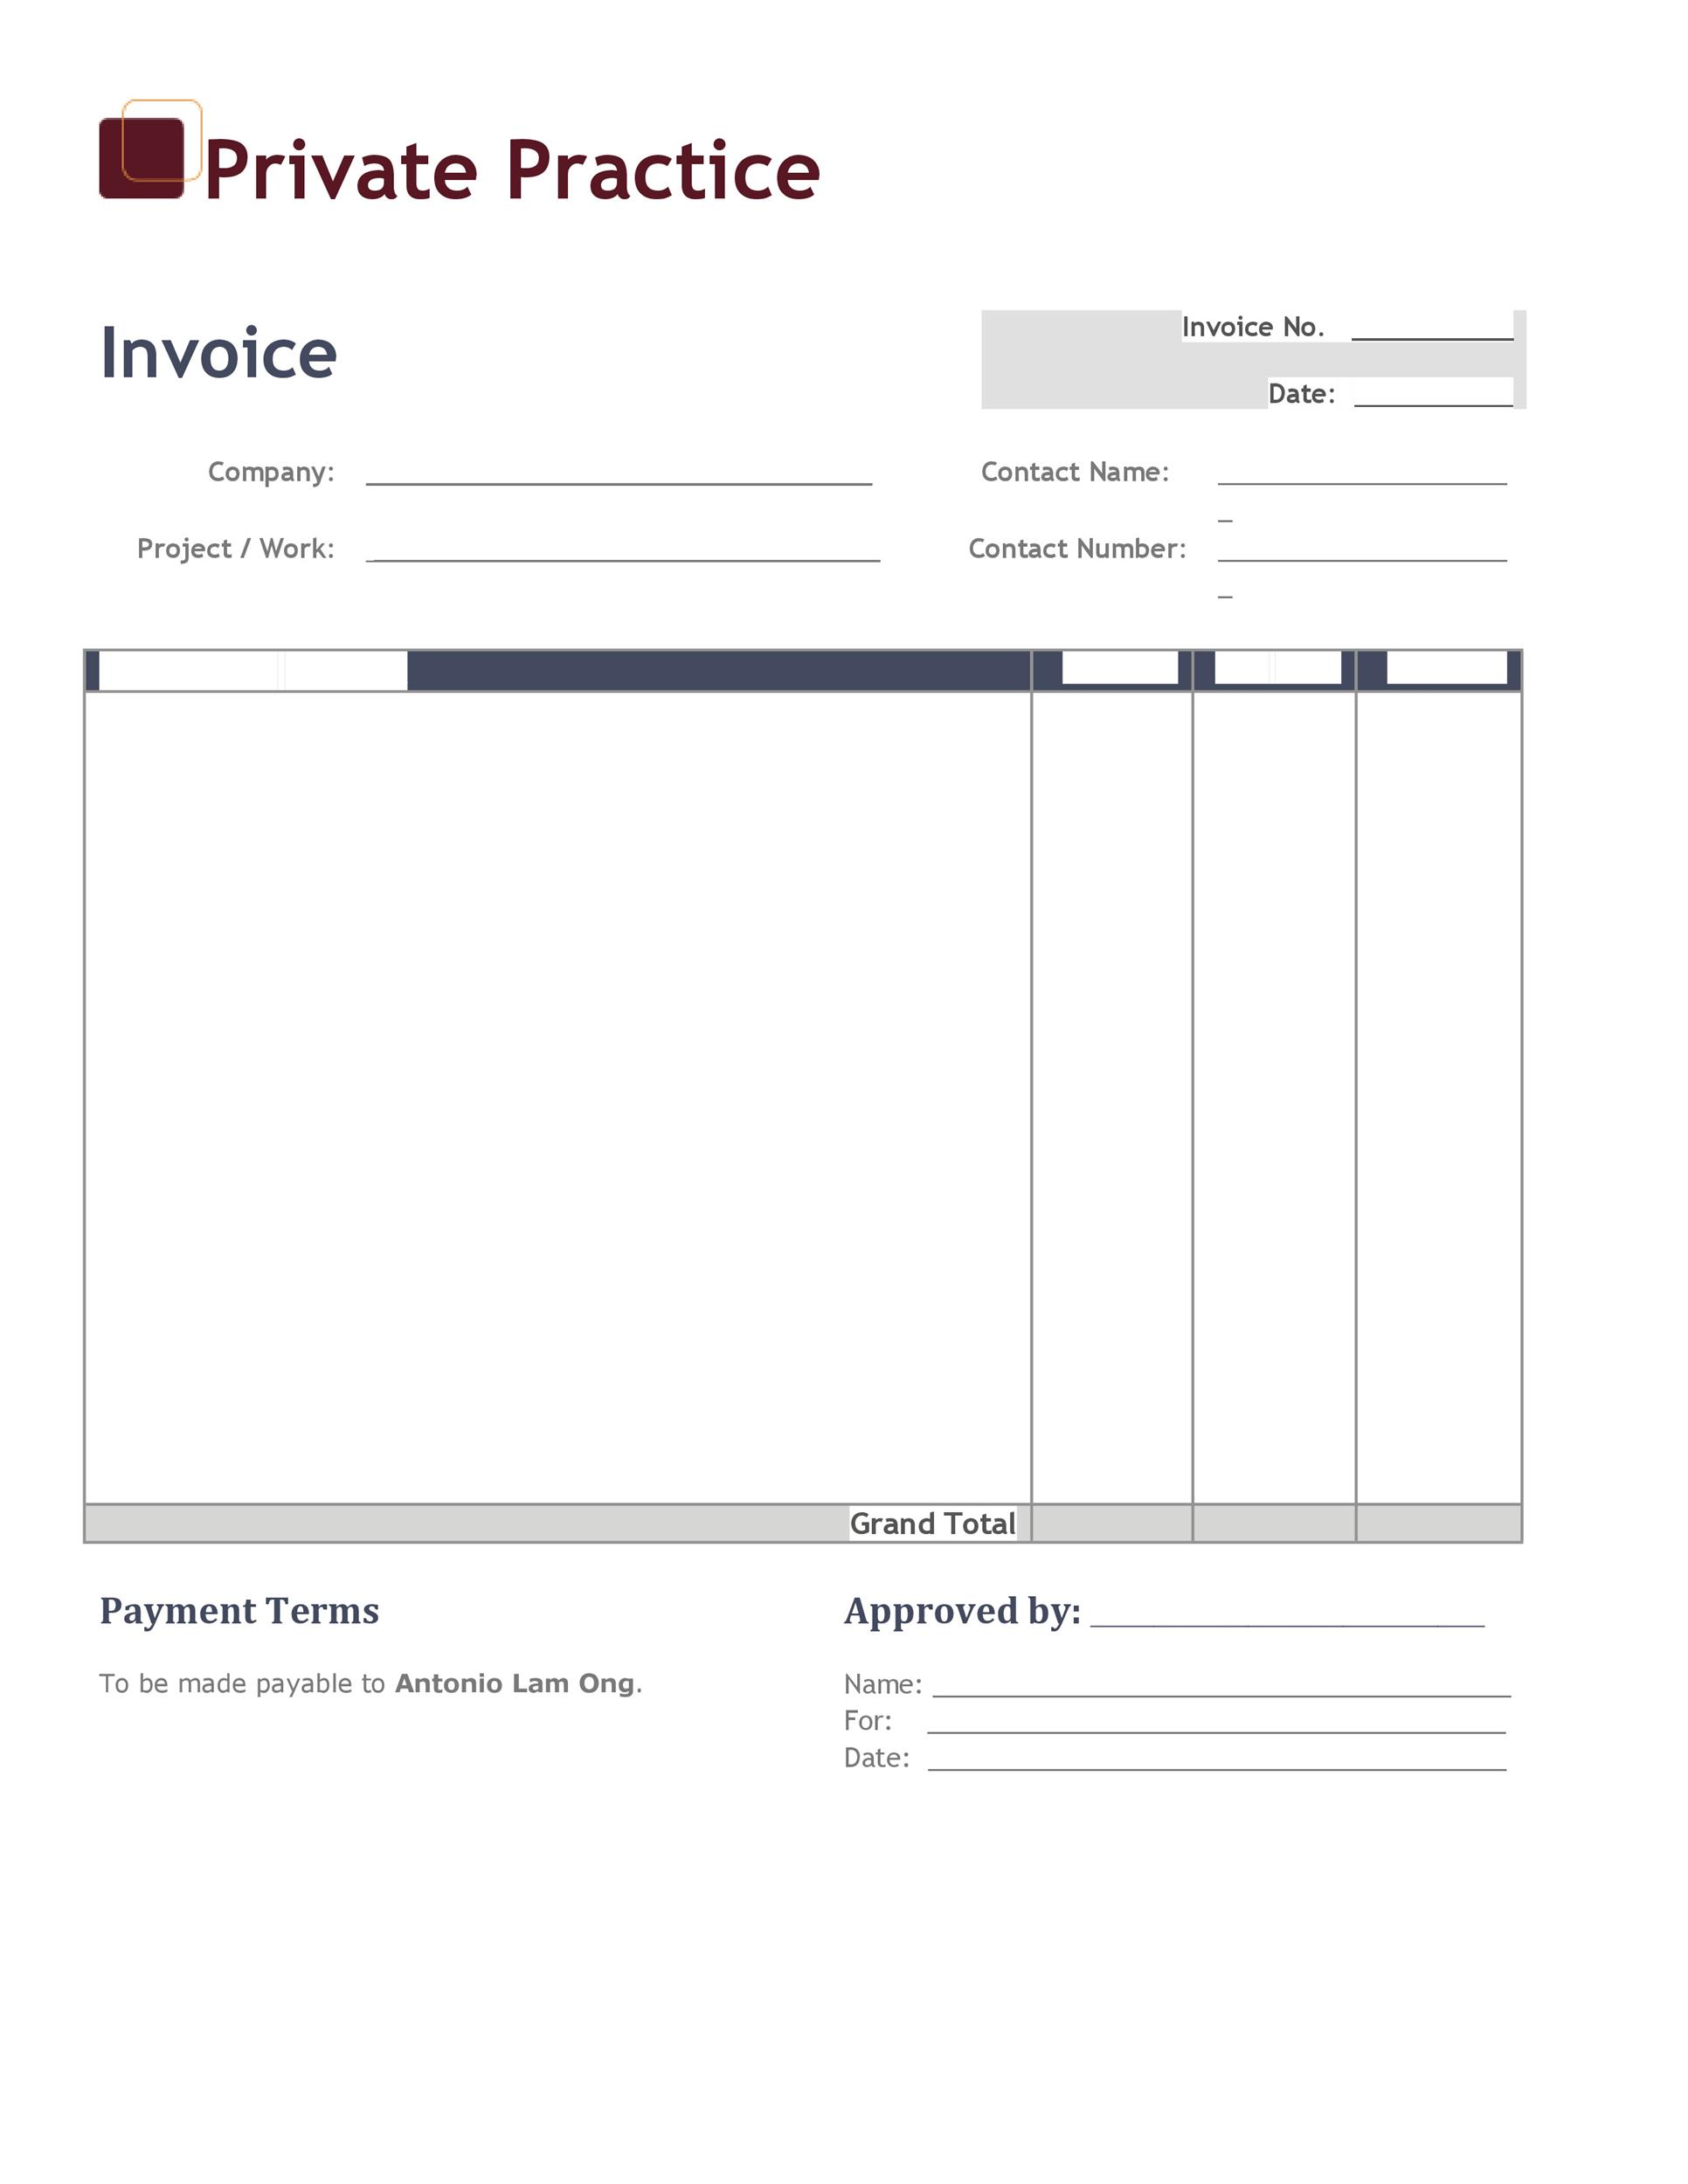 Invoice Templates Blank Commercial PDF Word Excel - Ms word invoice template doc for service business